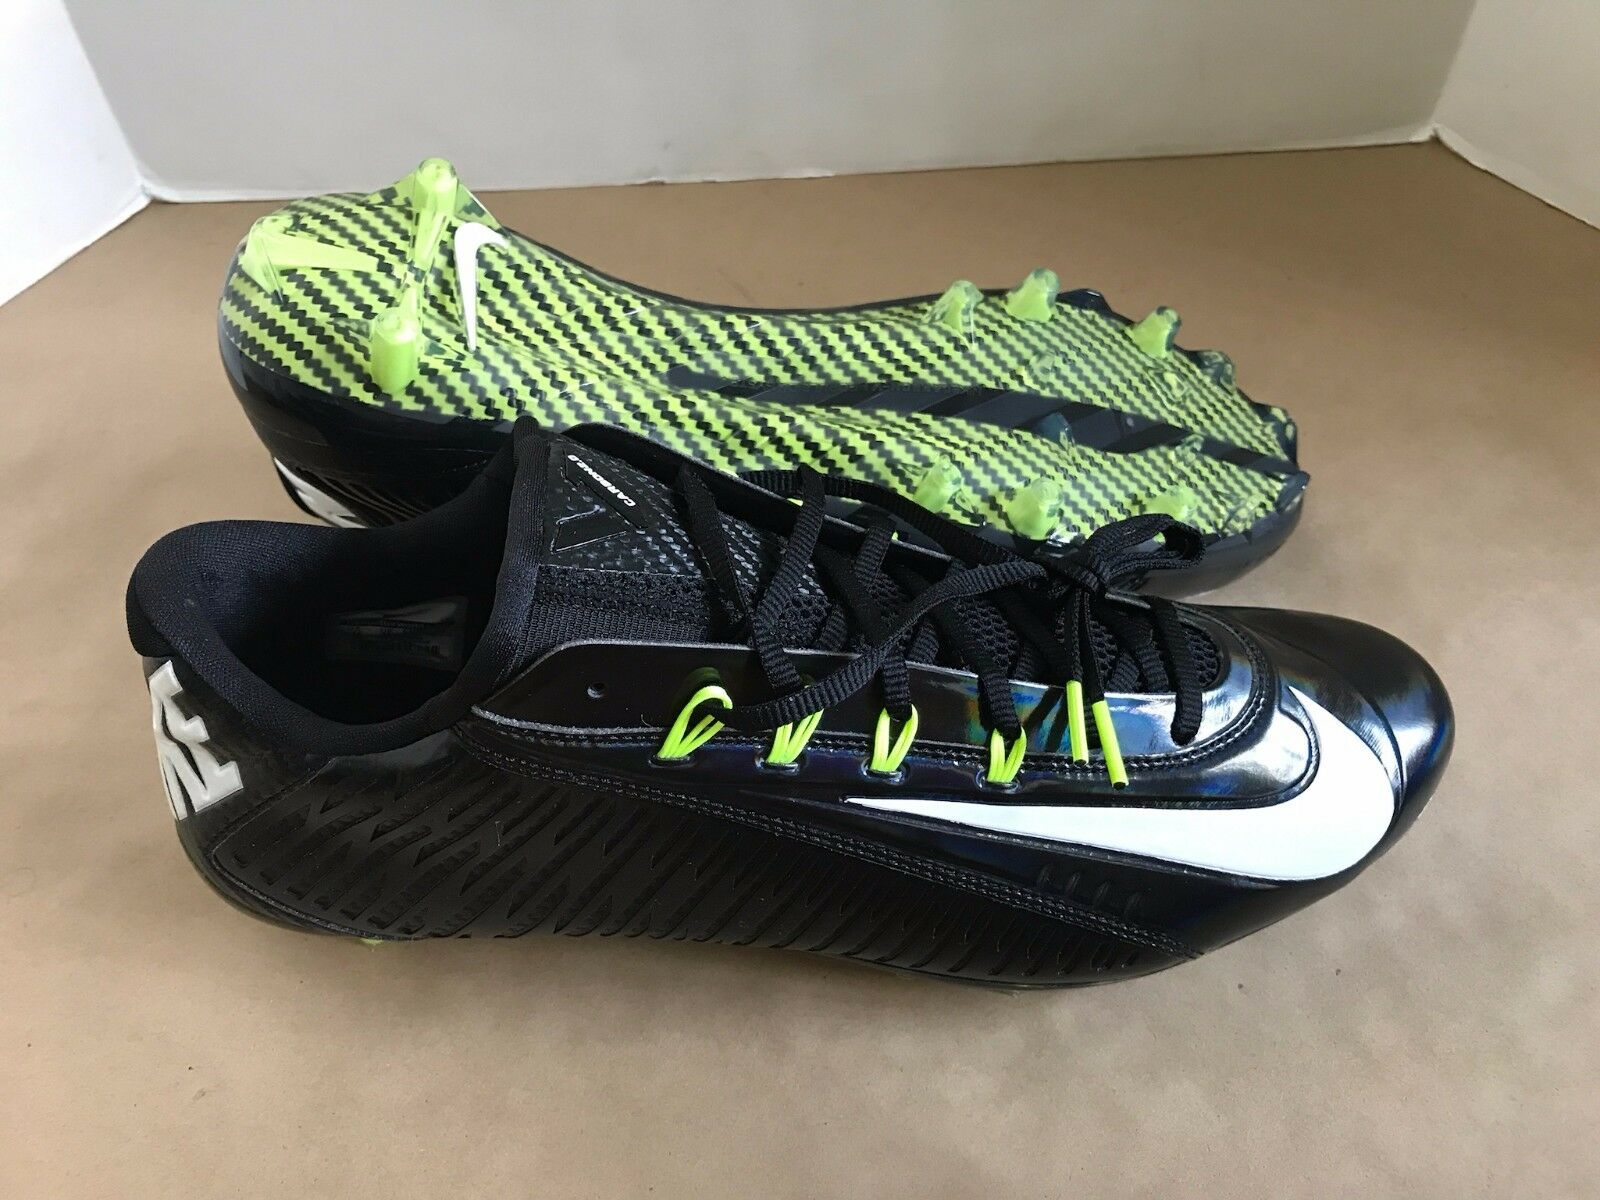 0b8c6e4957846 NEW NIKE VAPOR CARBON CARBON CARBON 2014 ELITE TD Football Cleats Black  MEN S Size 14 150